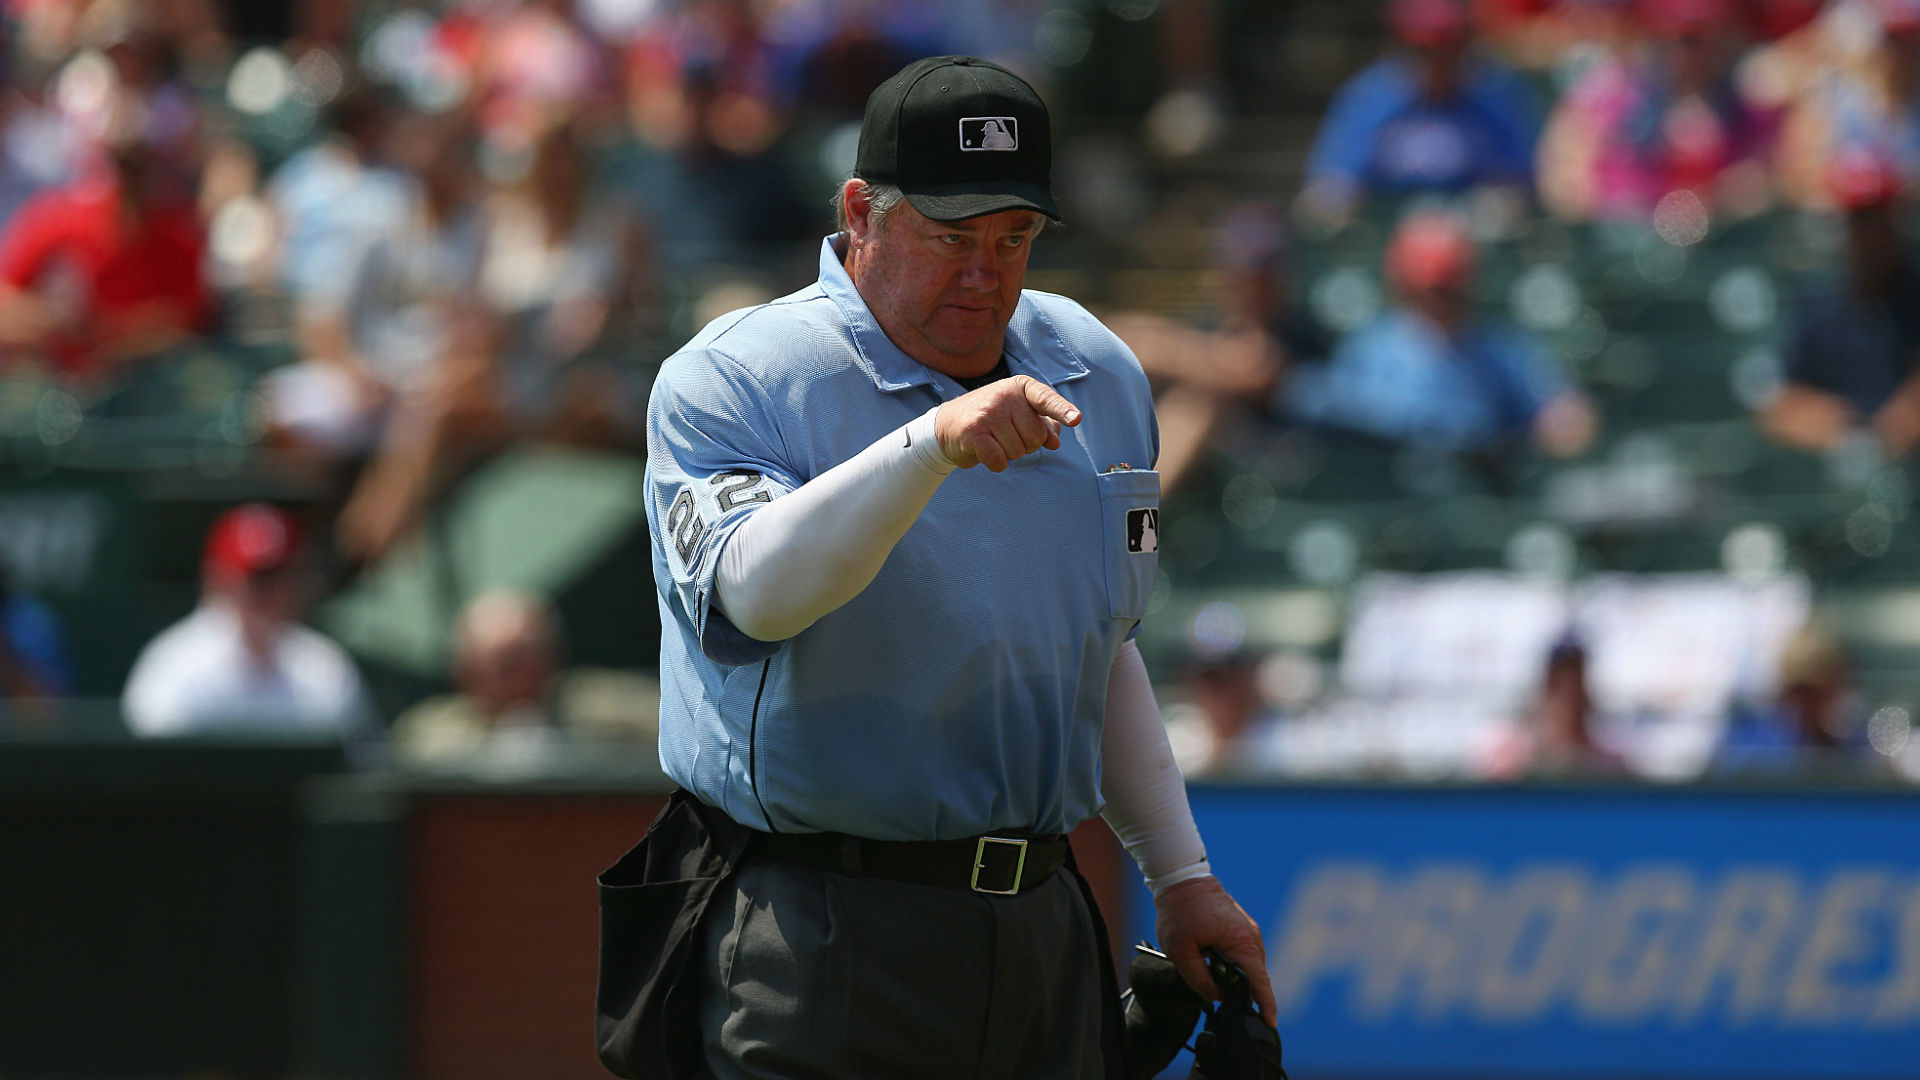 Umpire Joe West suspended over comments about Adrian Beltre